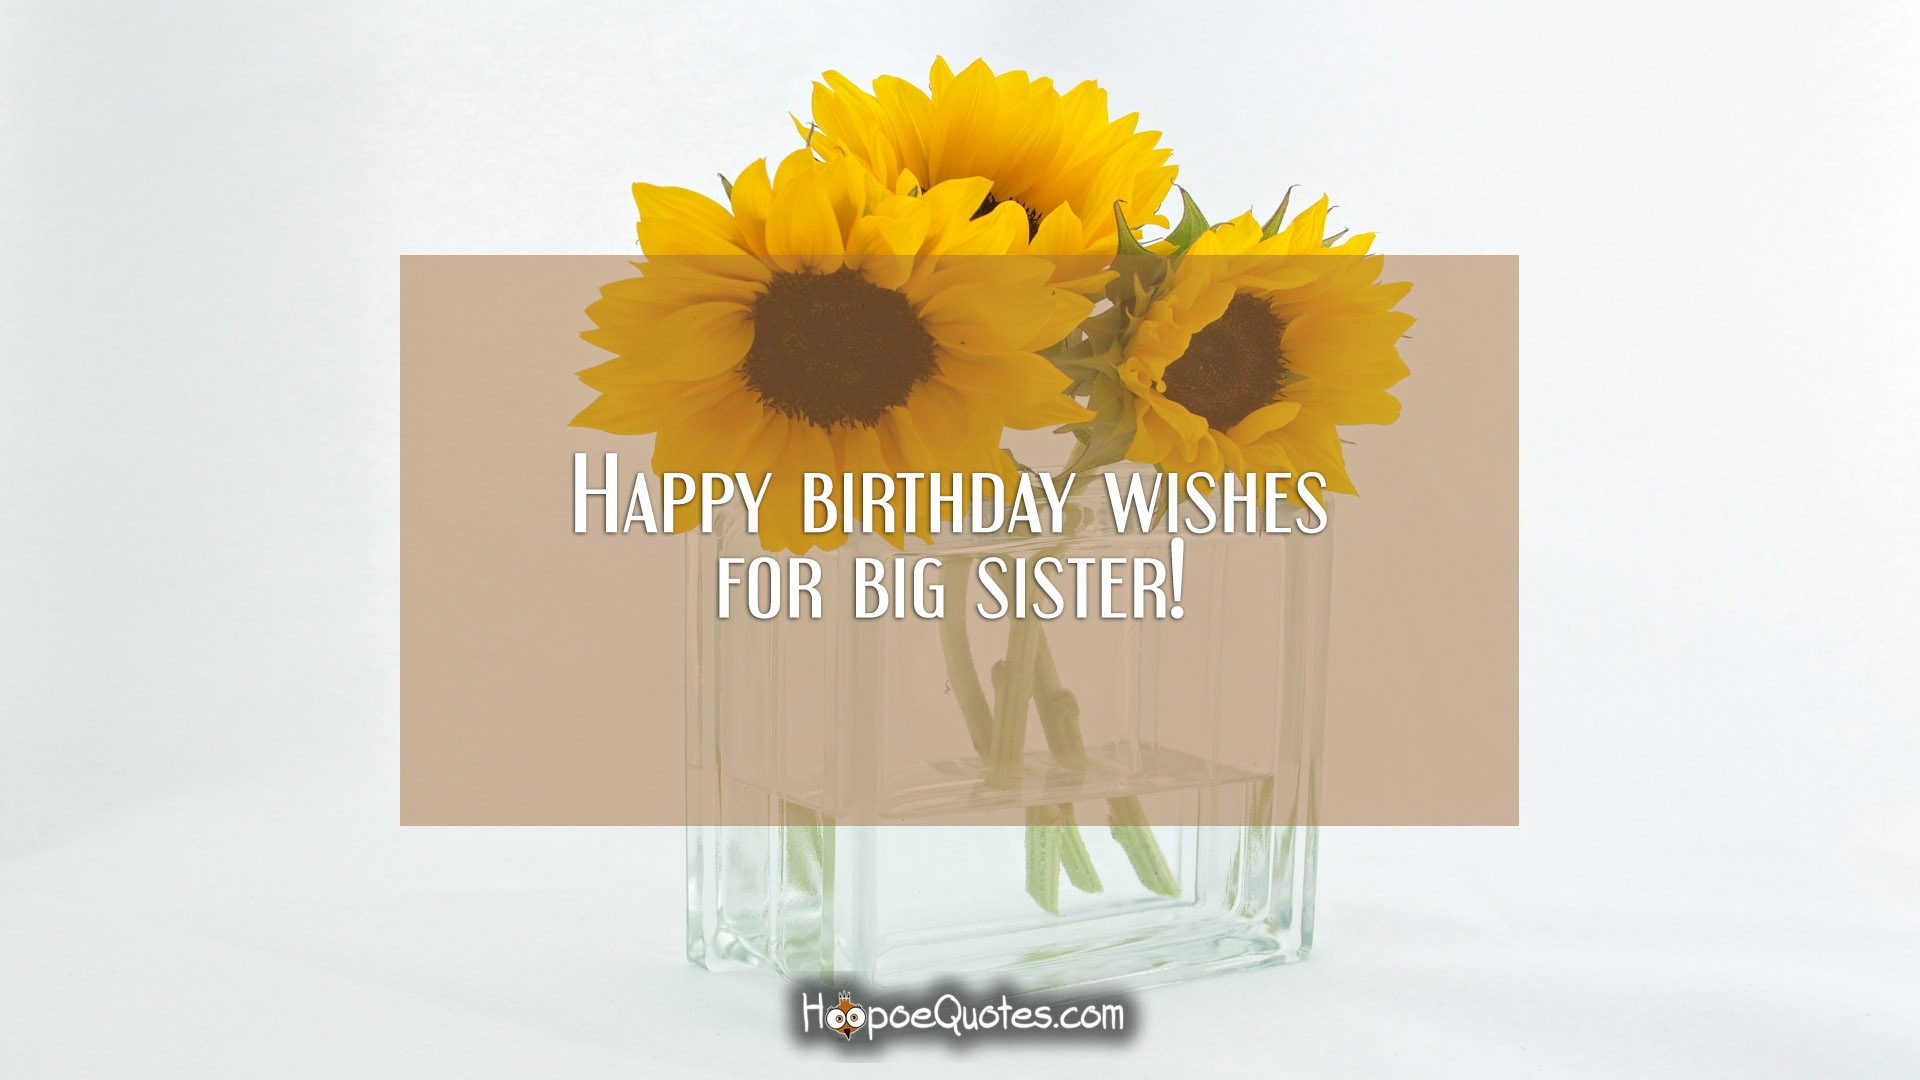 Happy Birthday Wishes For Big Sister Hoopoequotes